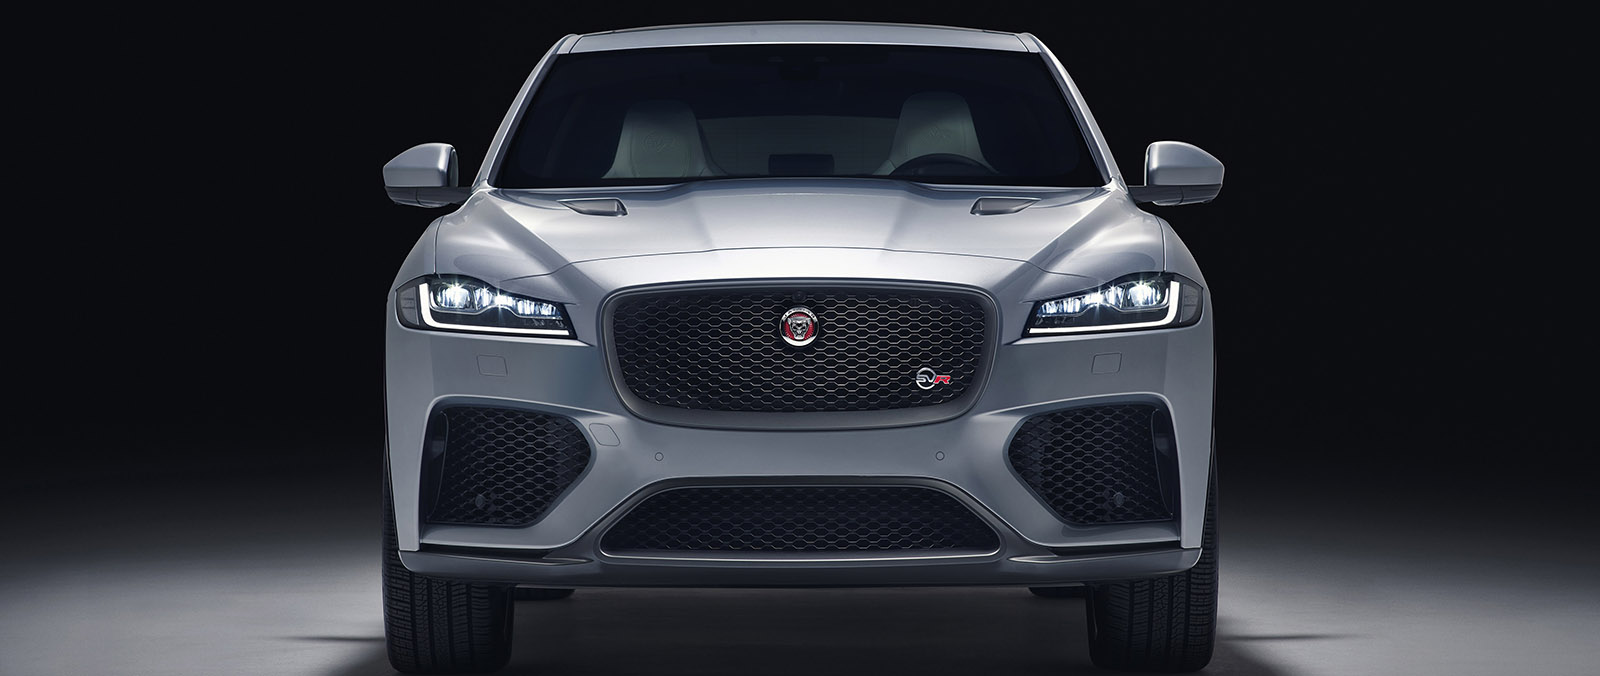 Jaguar F-Pace SVR is sportauto in SUV-verpakking